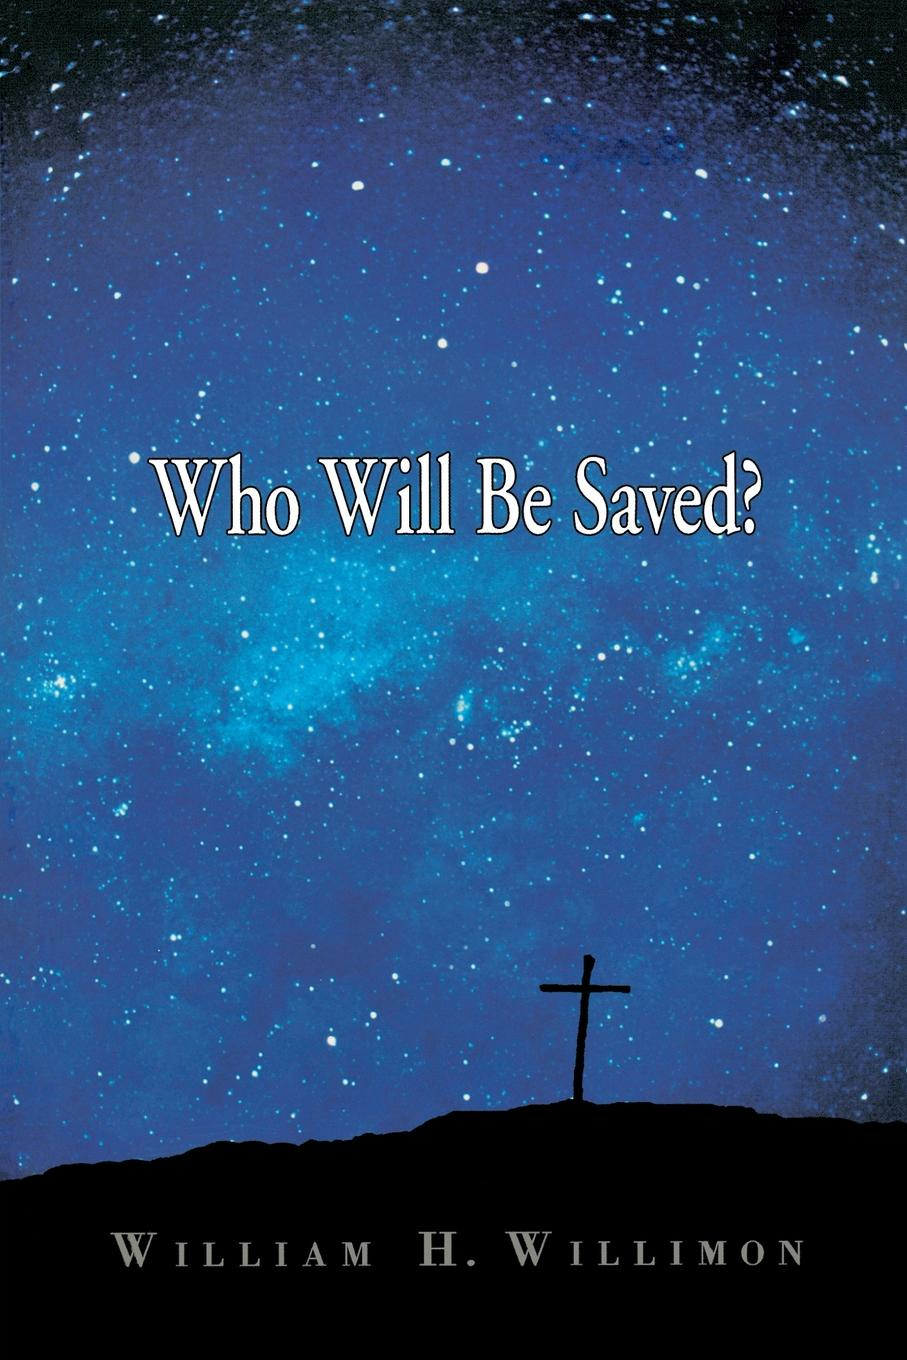 William H Willimon Who Will Be Saved